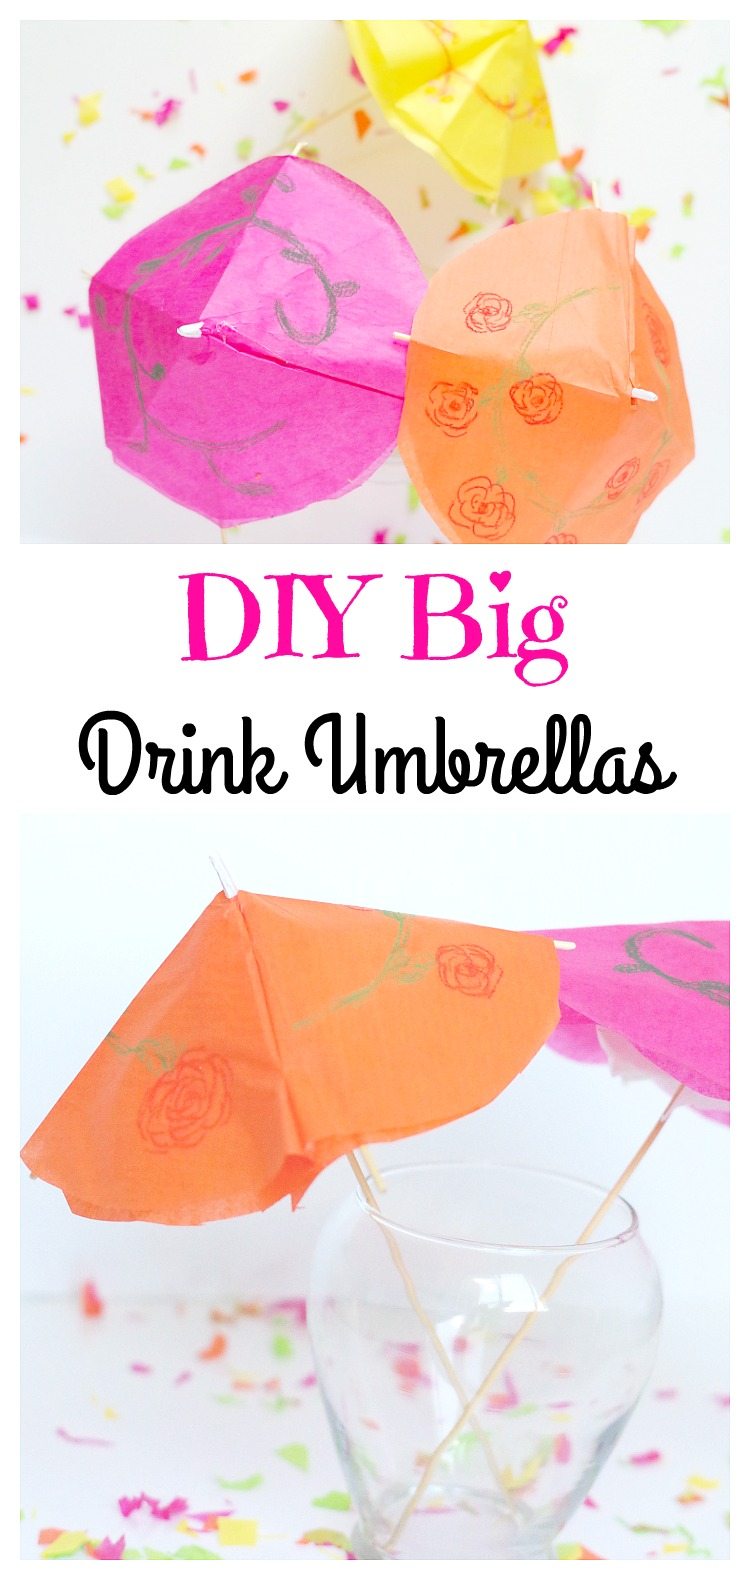 DIY Big Drink Umbrellas. Perfect decorations for a summer celebration or for large drinks!